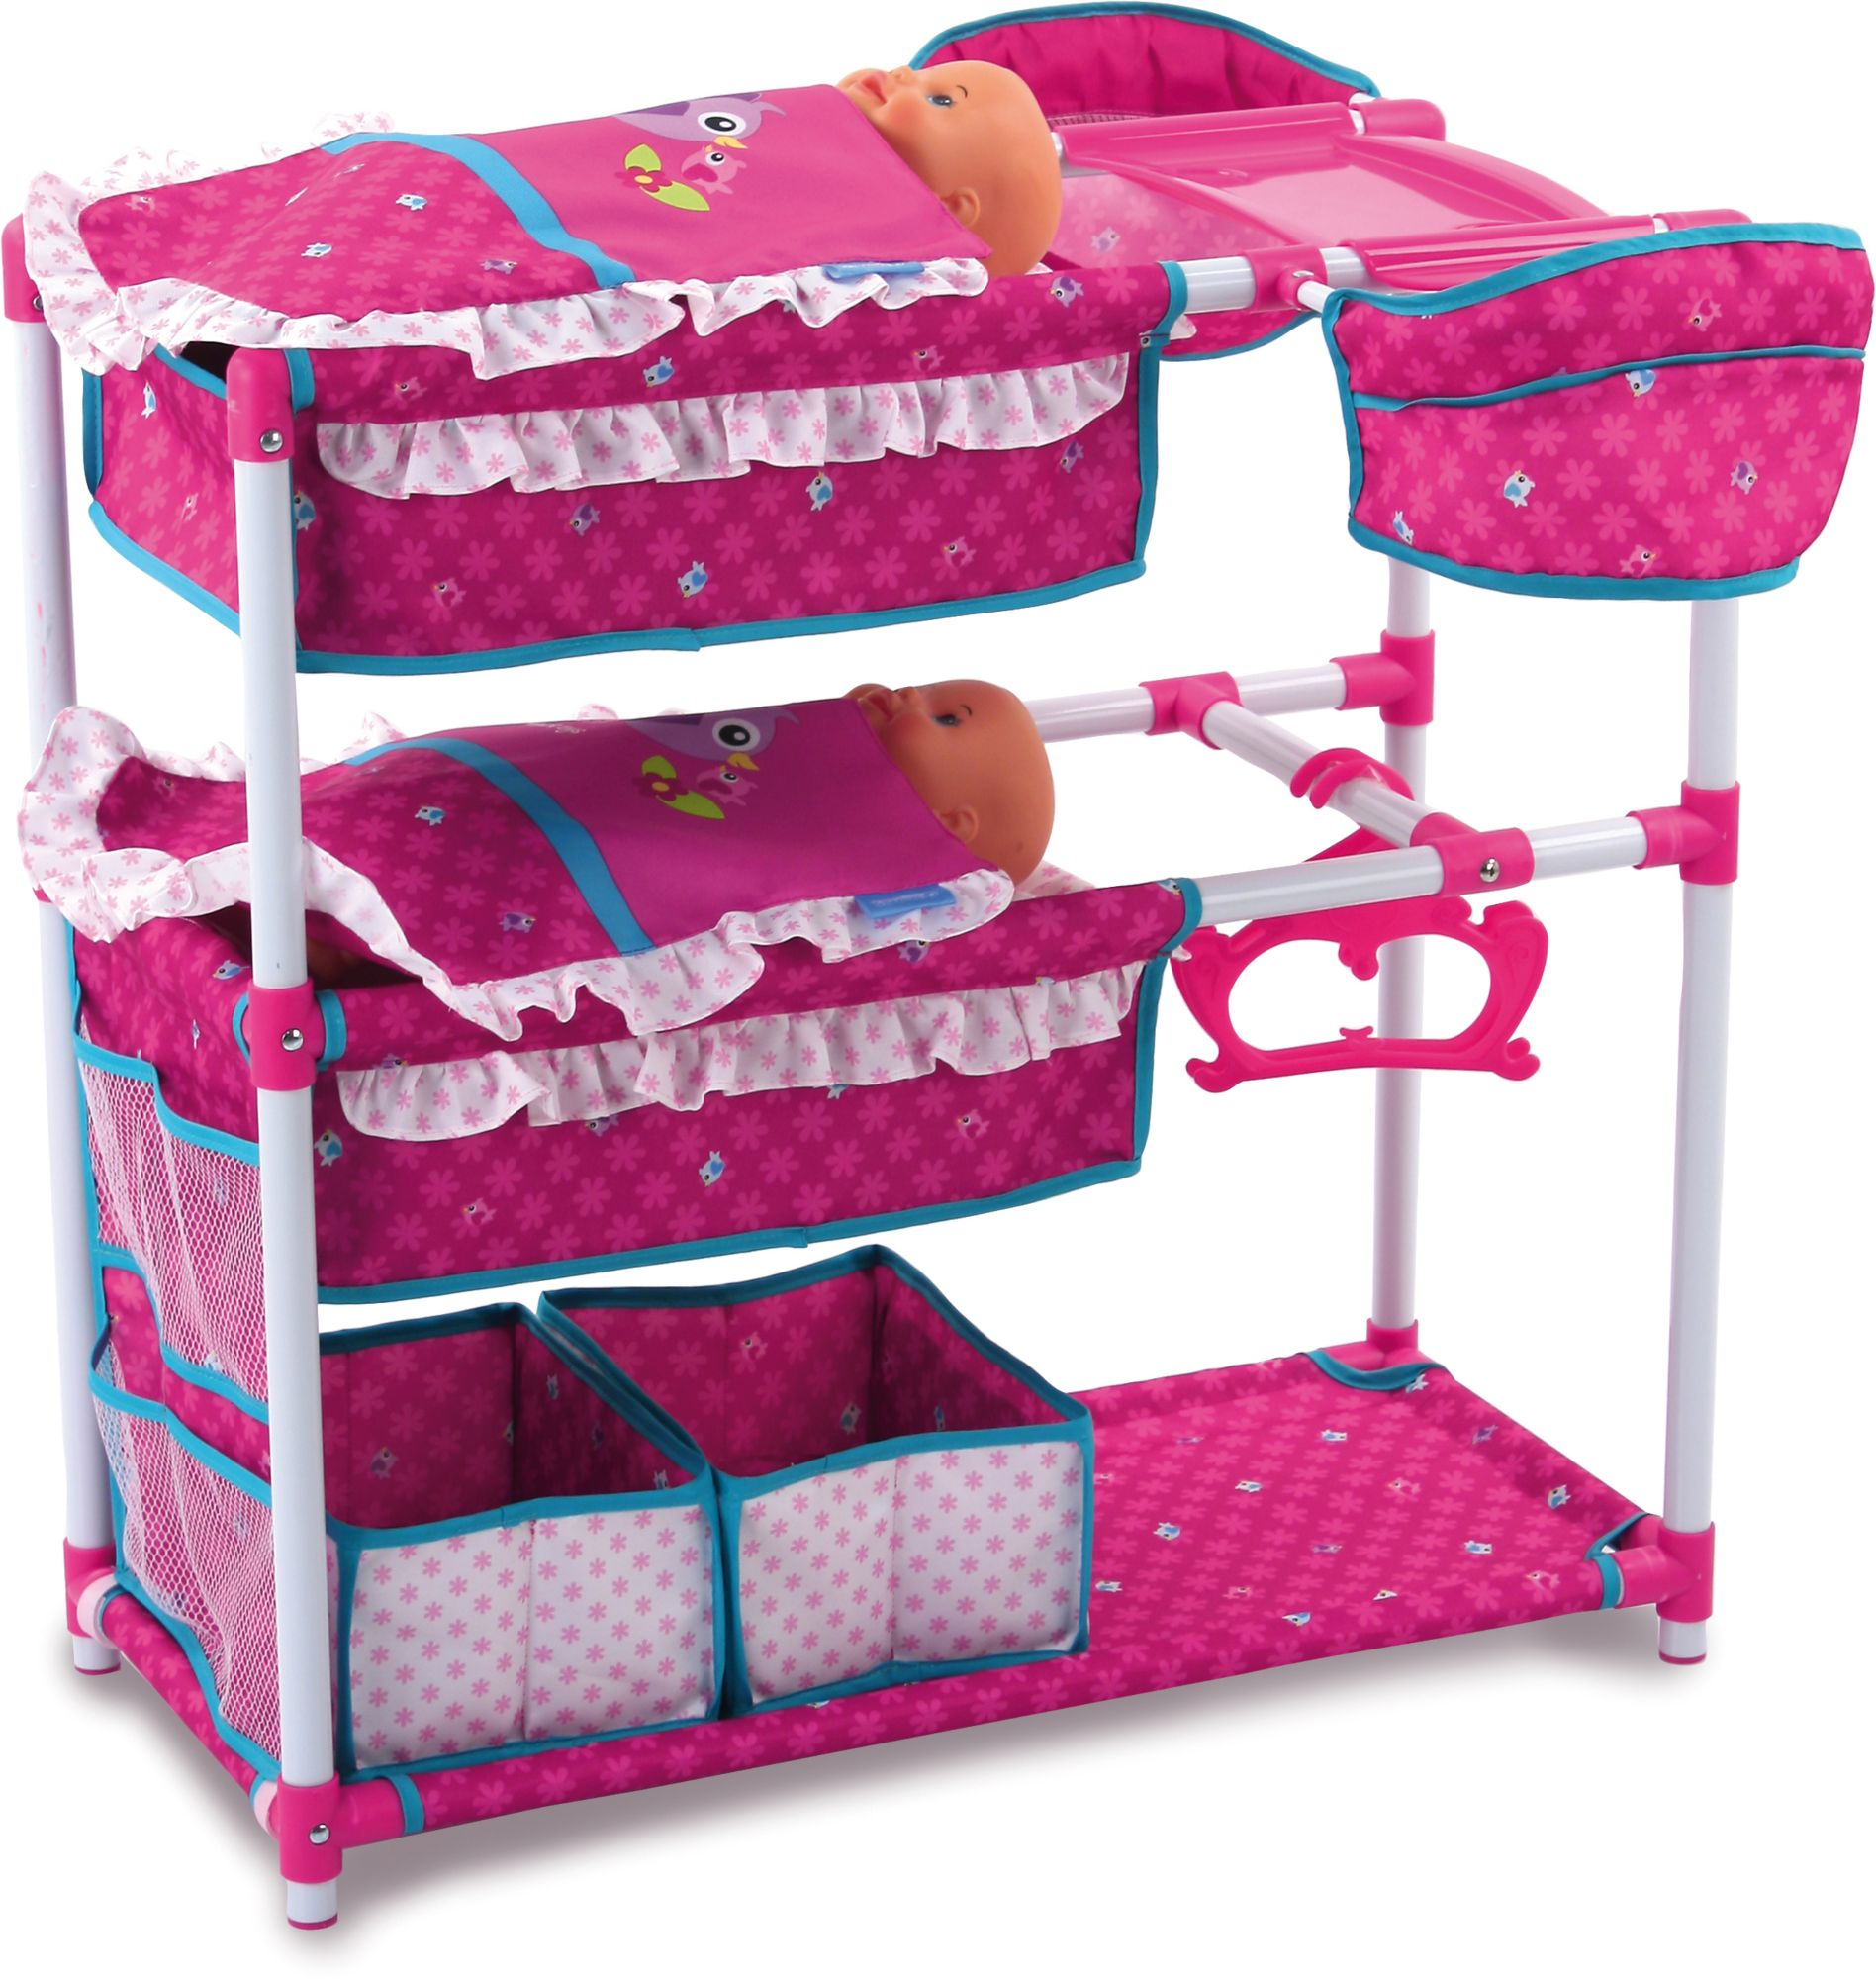 HAUCK TOYS FOR KIDS hauck TOYS FOR KIDS Puppenspielstation, »Twin Doll Station, Birdie Pink«